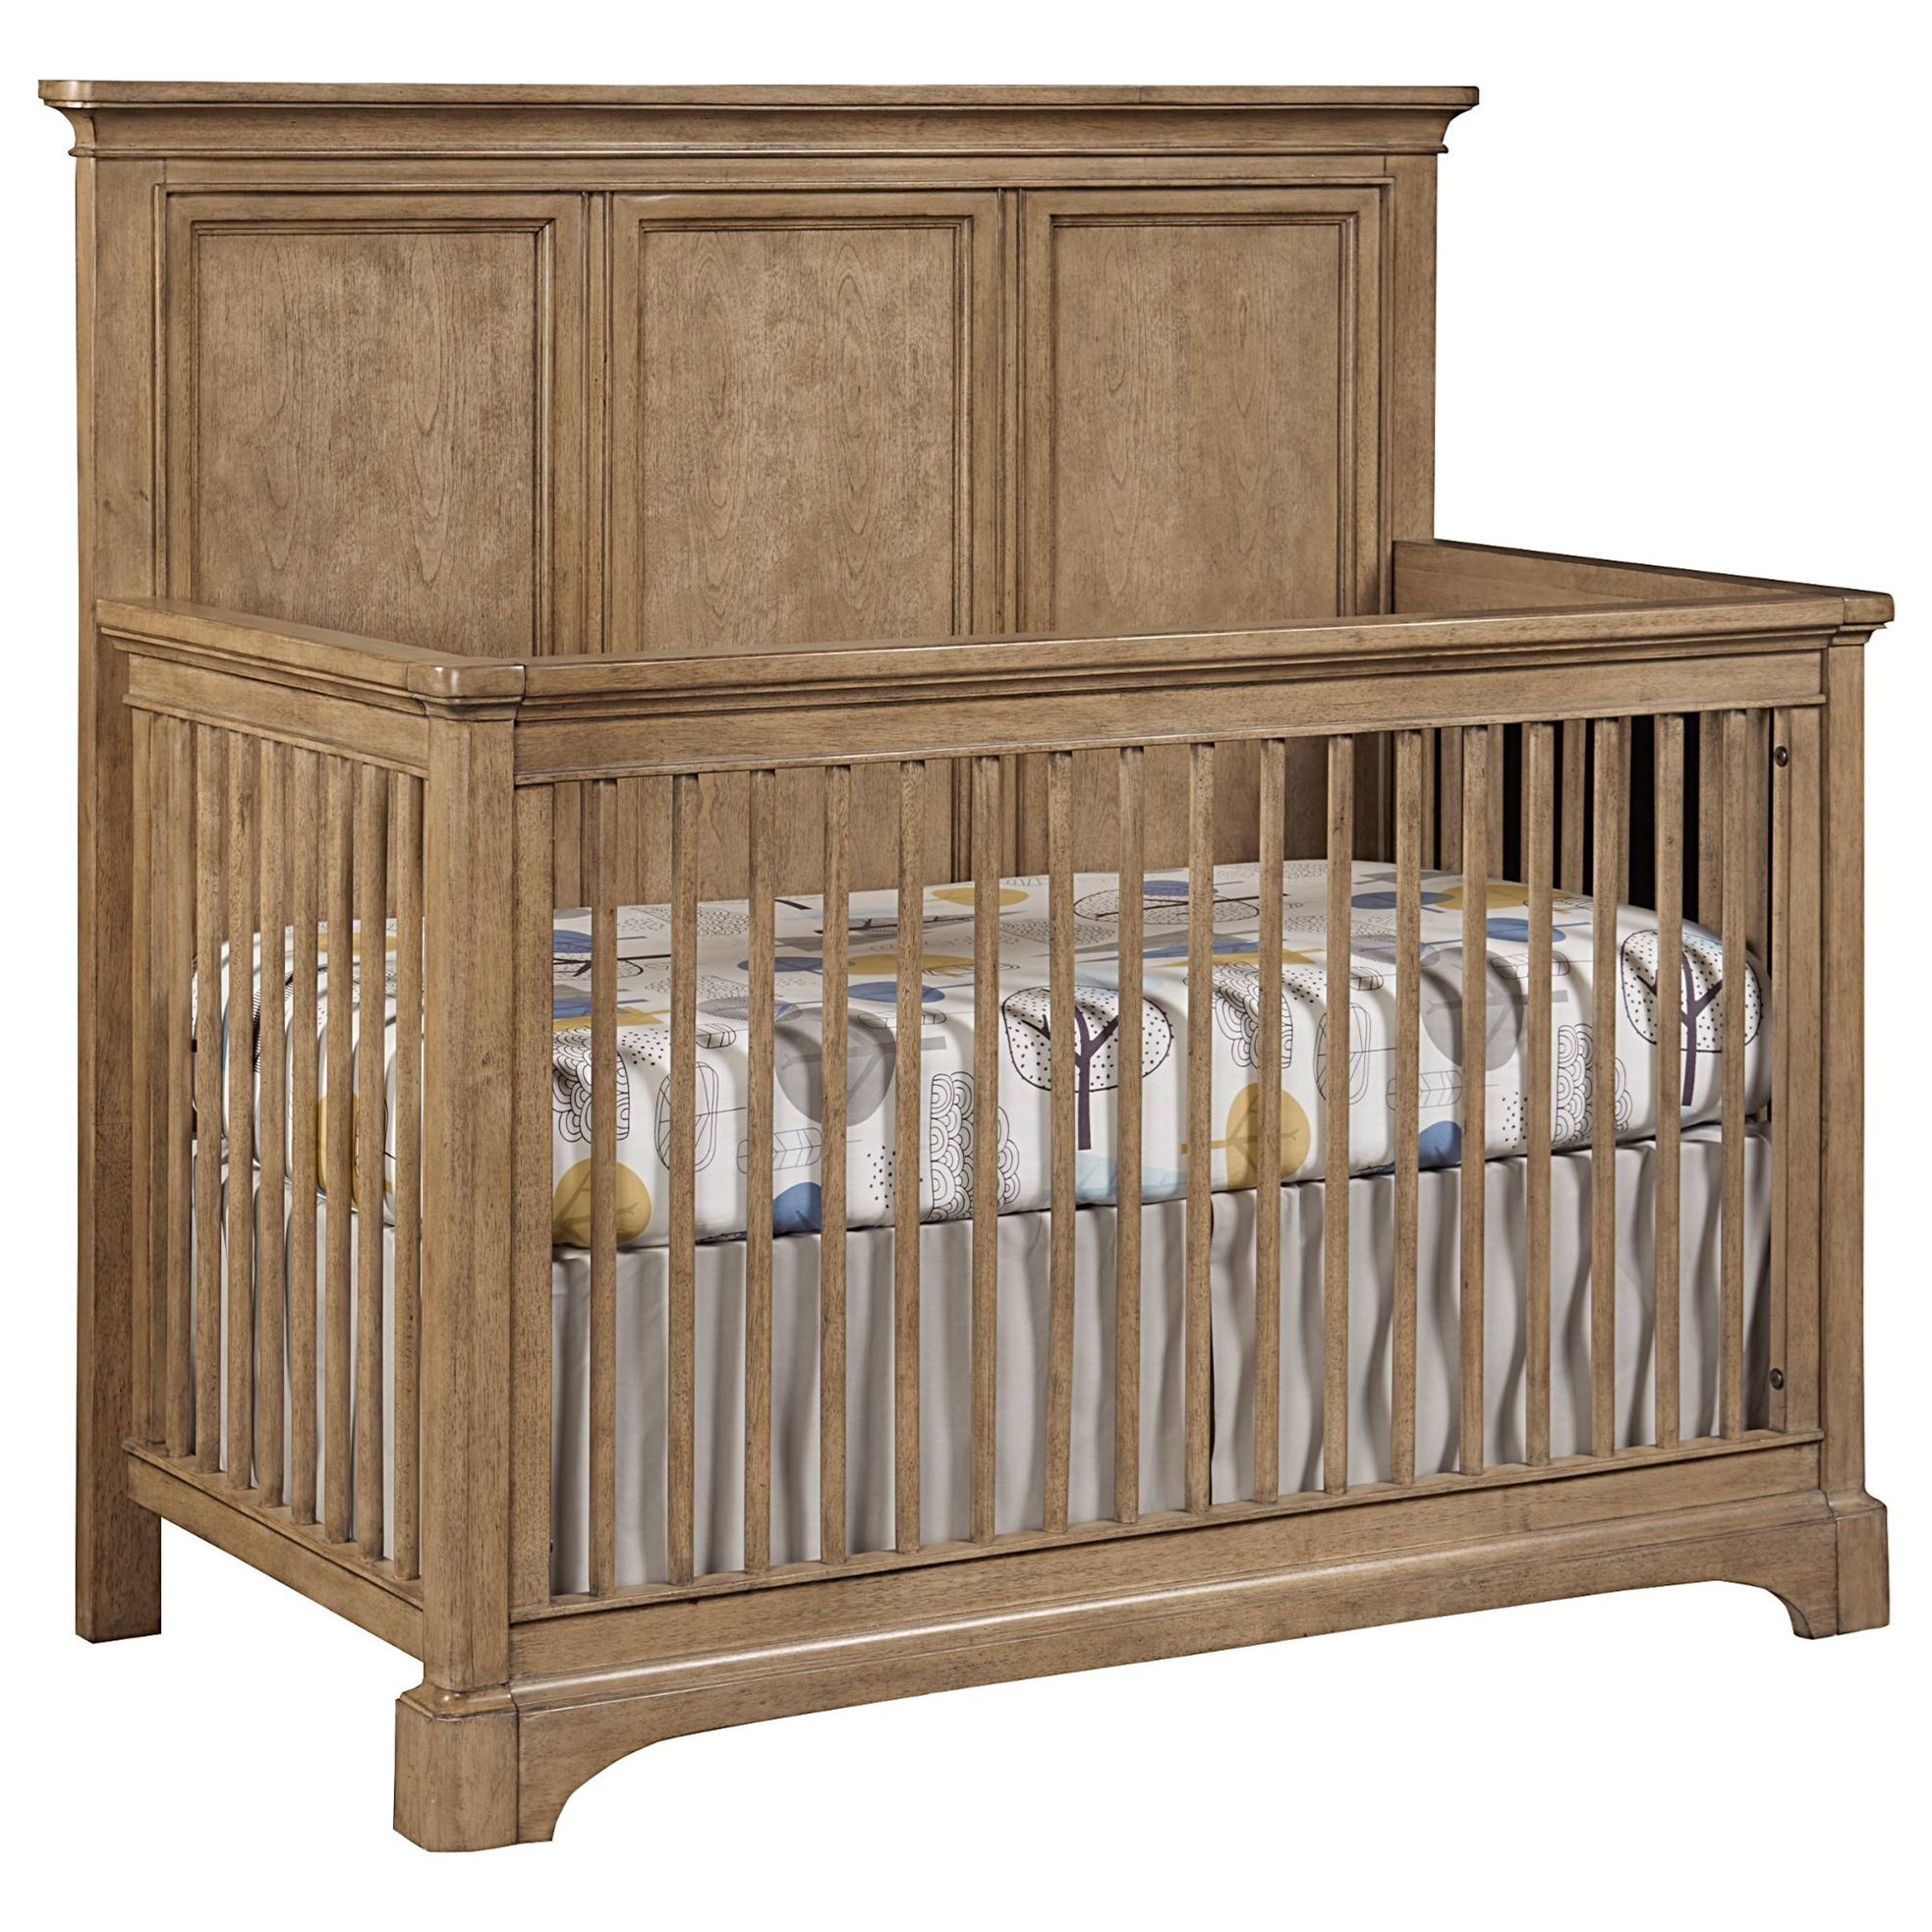 Stone & Leigh Furniture Chelsea Square Built To Grow Crib - Item Number: 584-63-50